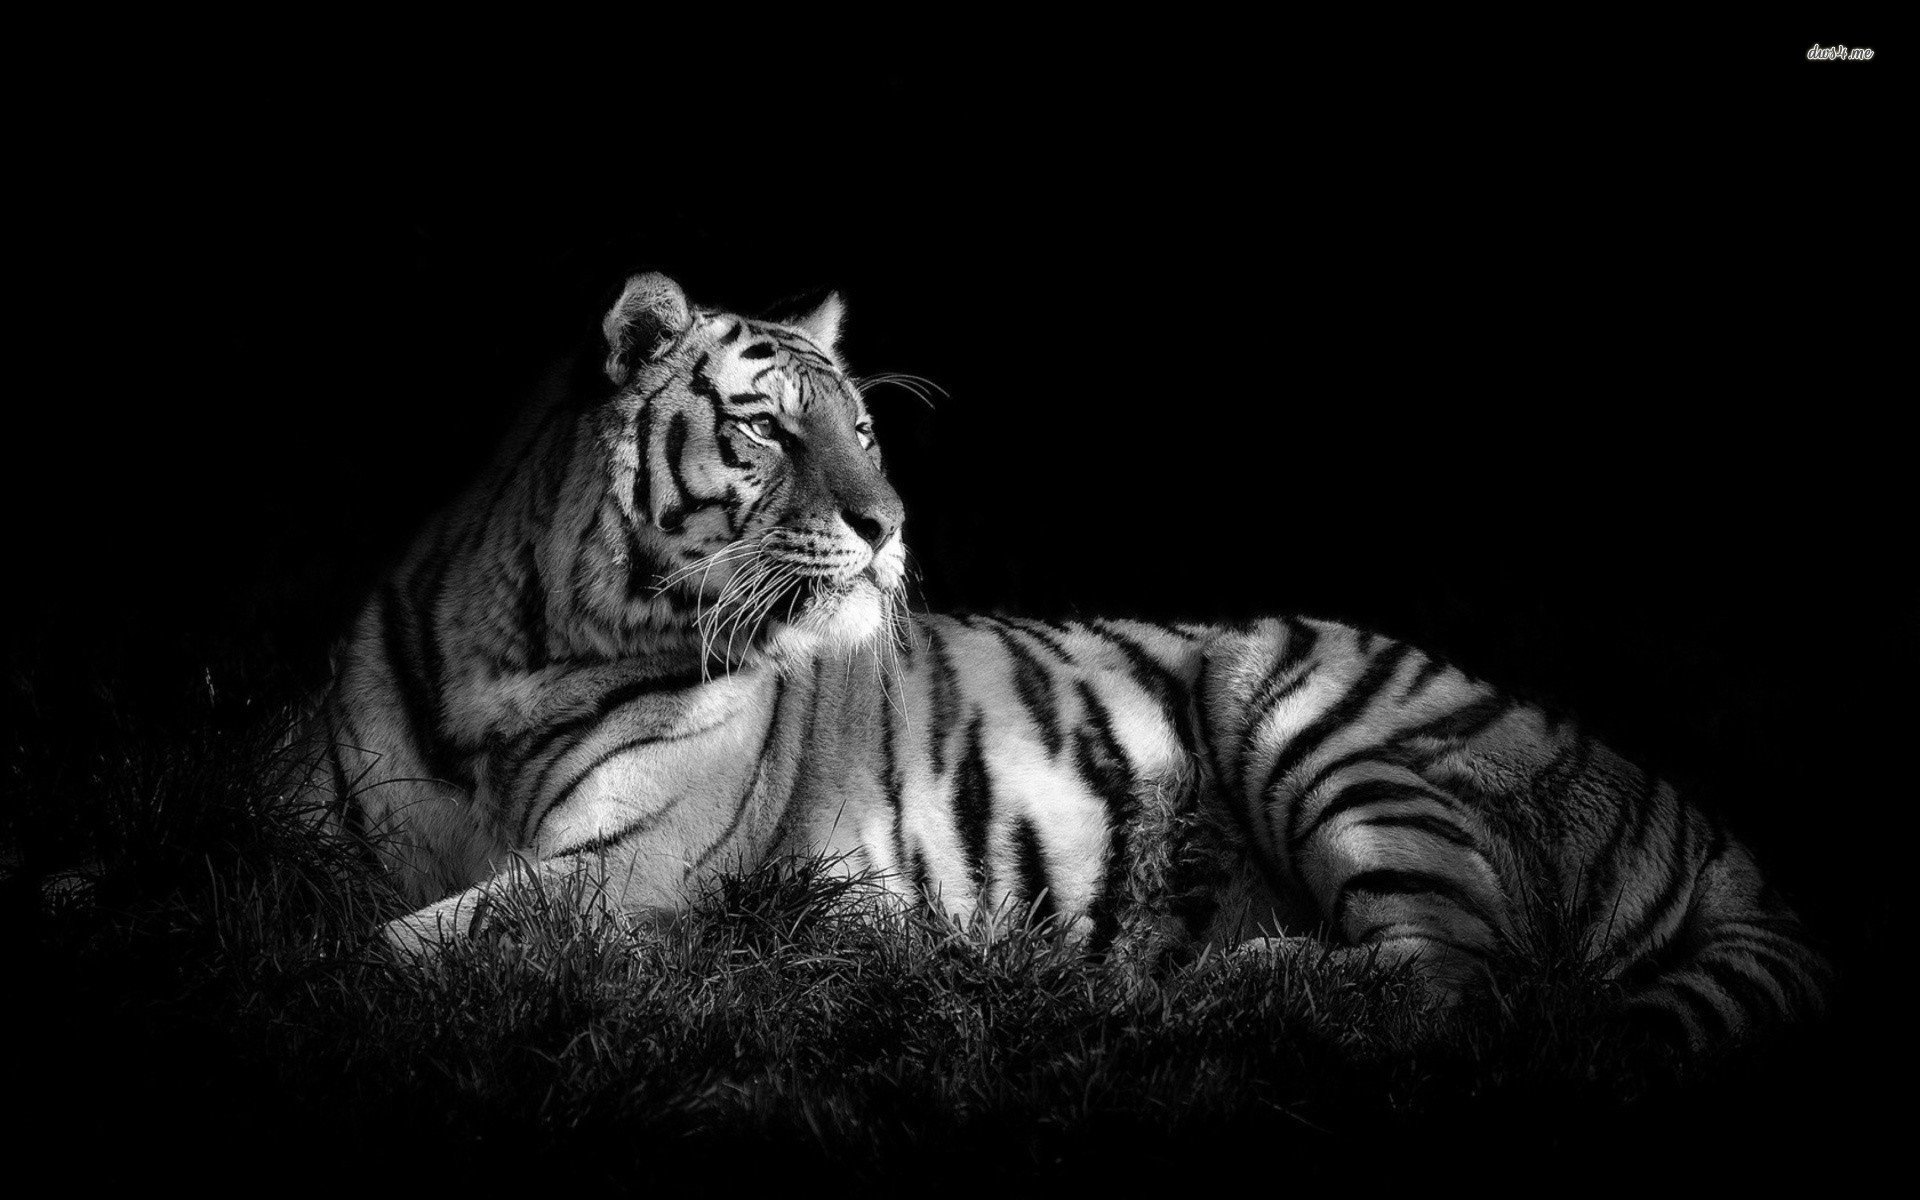 Black And White Tiger Wallpaper